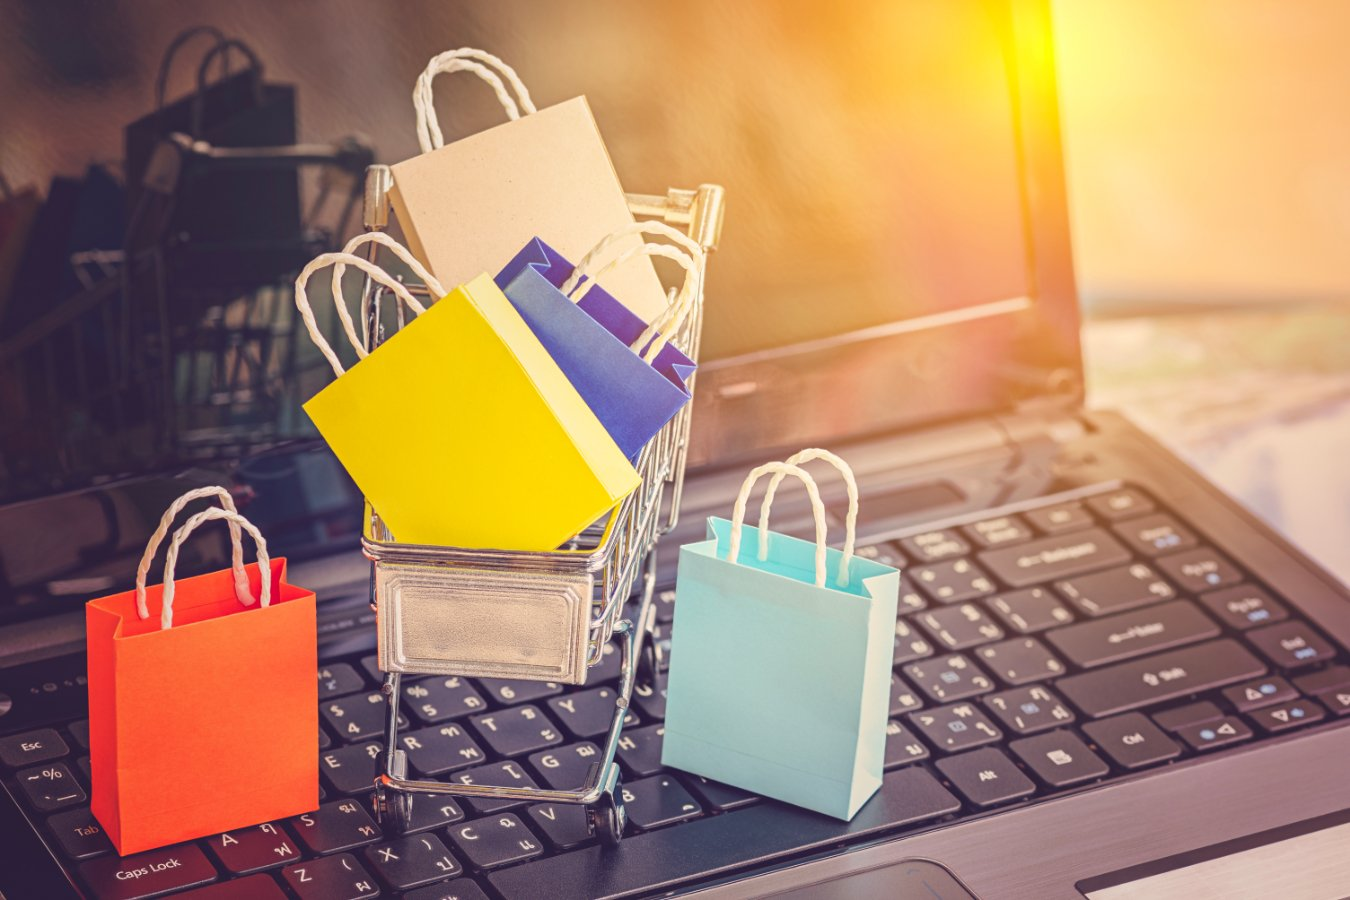 The call for an omnichannel eCommerce solution is louder than ever